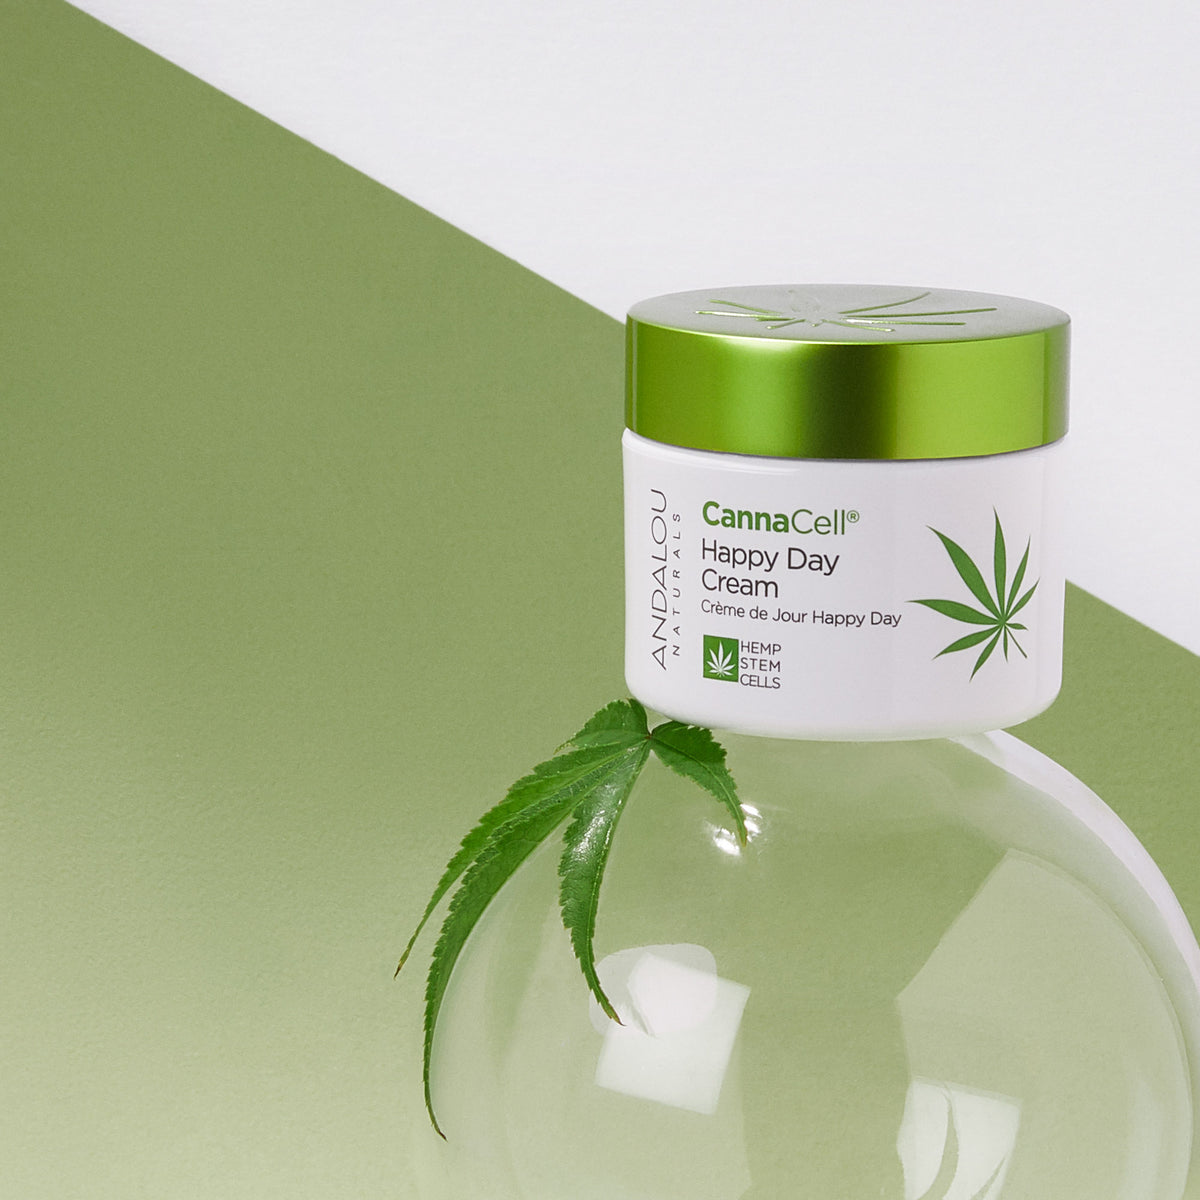 Andalou Naturals CannaCell Happy Day Cream jar with hemp leaf